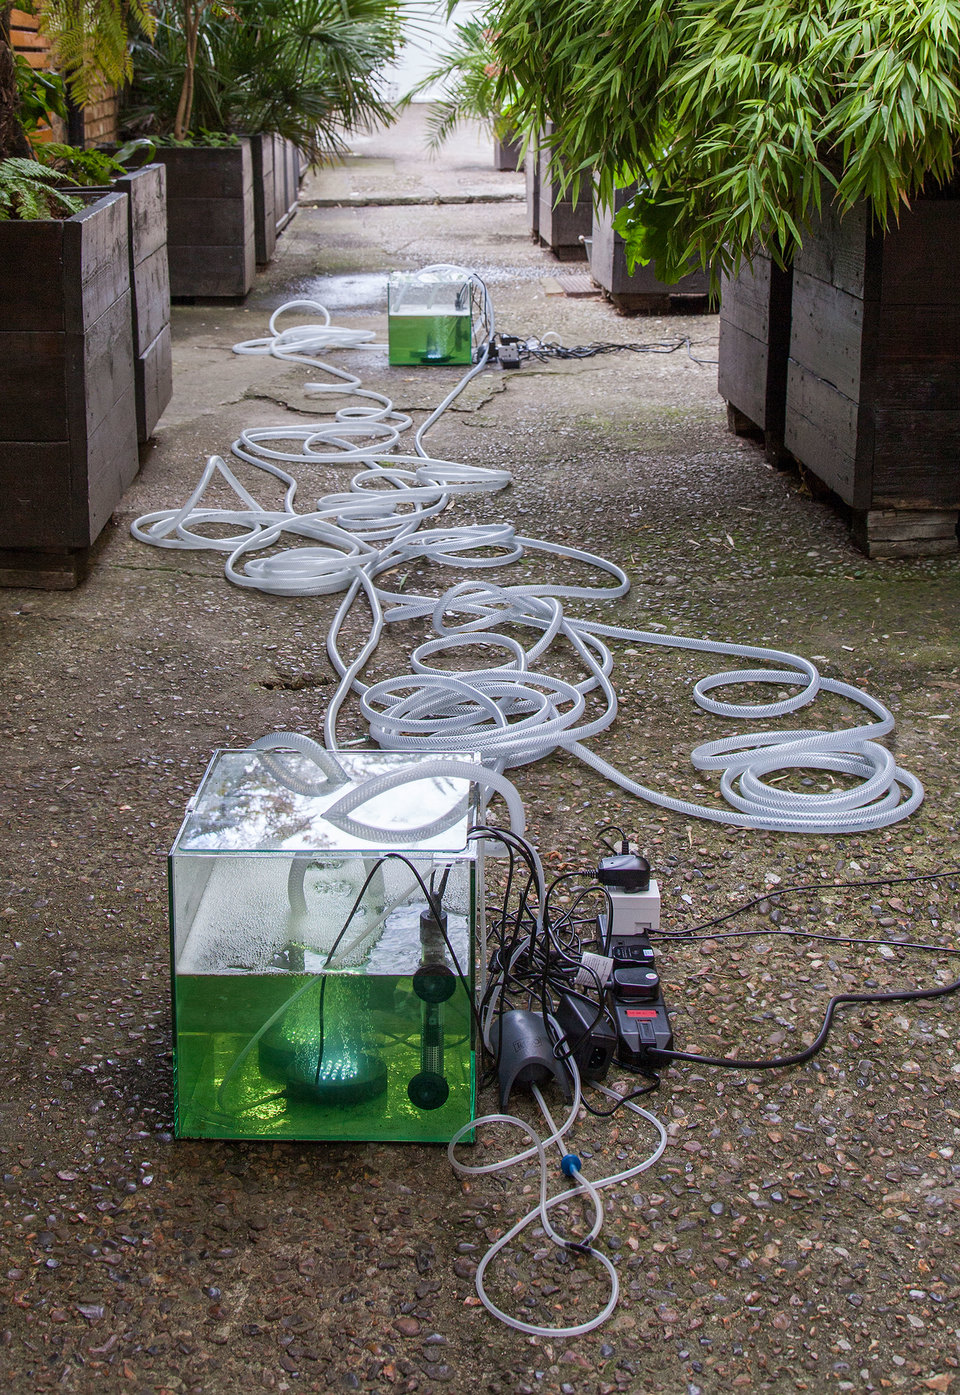 Daniel Keller, Onanet Spiruline 2, 2015, Living Spirulina algae, aqueous nutrient solution,nano cube glass aquariums, power plugs, heaters, air compressors, LED air stones, pumps, tubing, steel, Cell Project Space